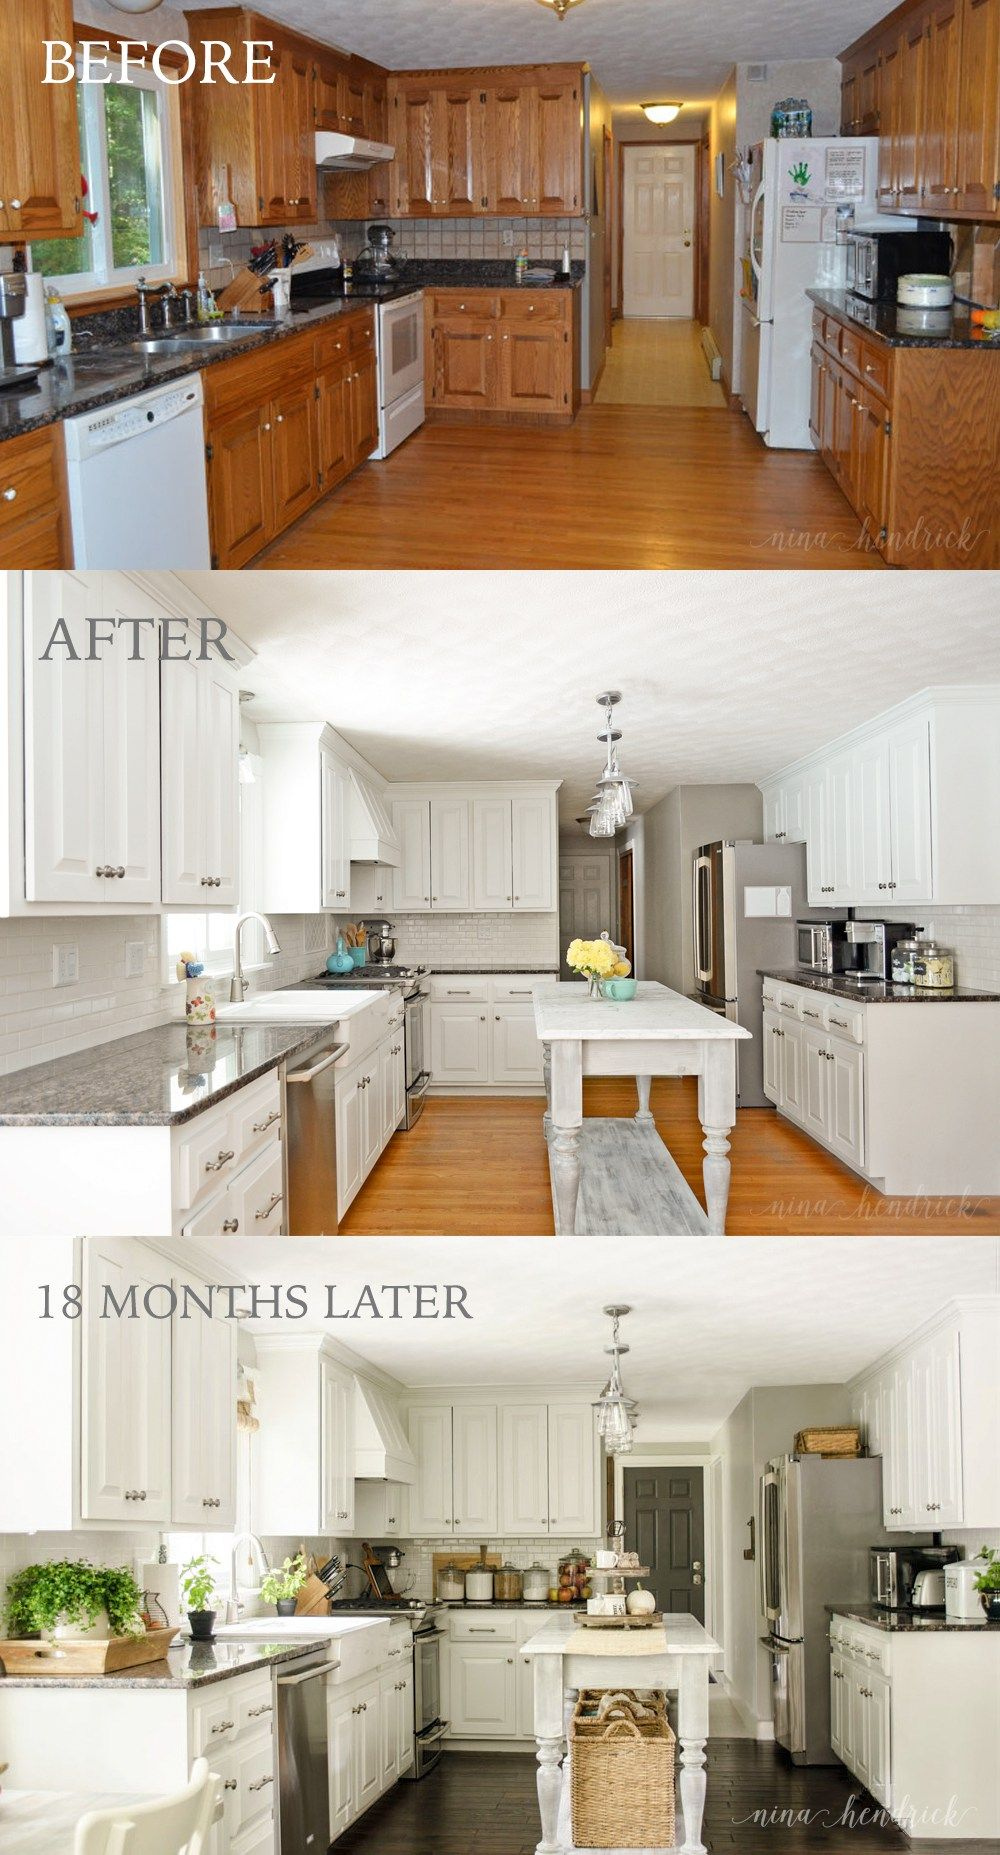 How To Paint Oak Cabinets And Hide The Grain Kitchen Design Kitchen Inspirations Kitchen Renovation